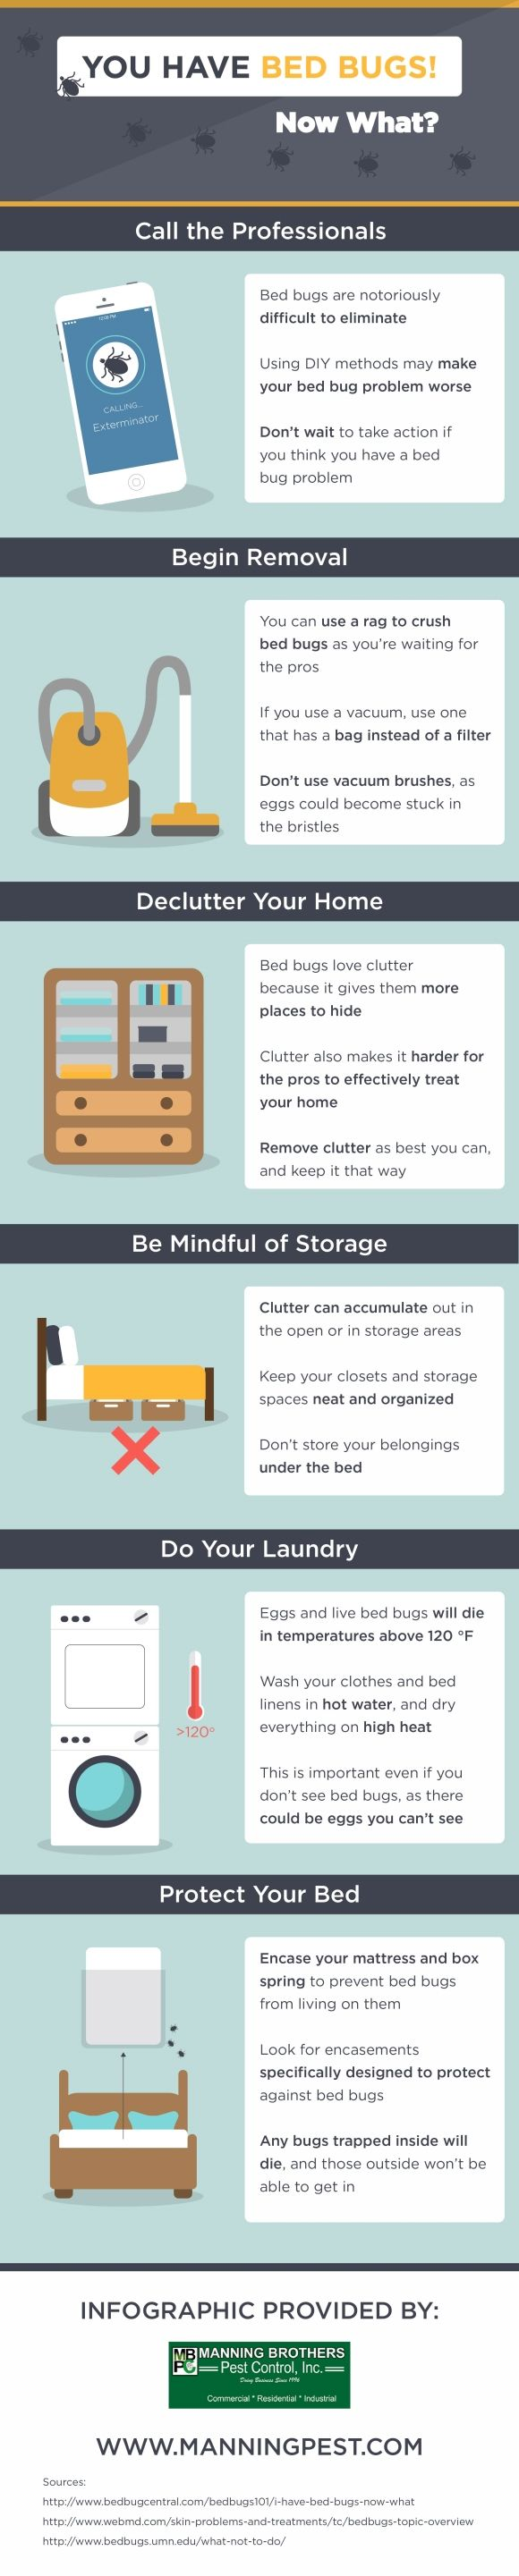 Your teenagers aren't the only ones that love clutter; bed bugs love it too! Click over to this infographic from a pest control company near Fort Lauderdale to find facts about bed bugs and what to do if you find them in your home.